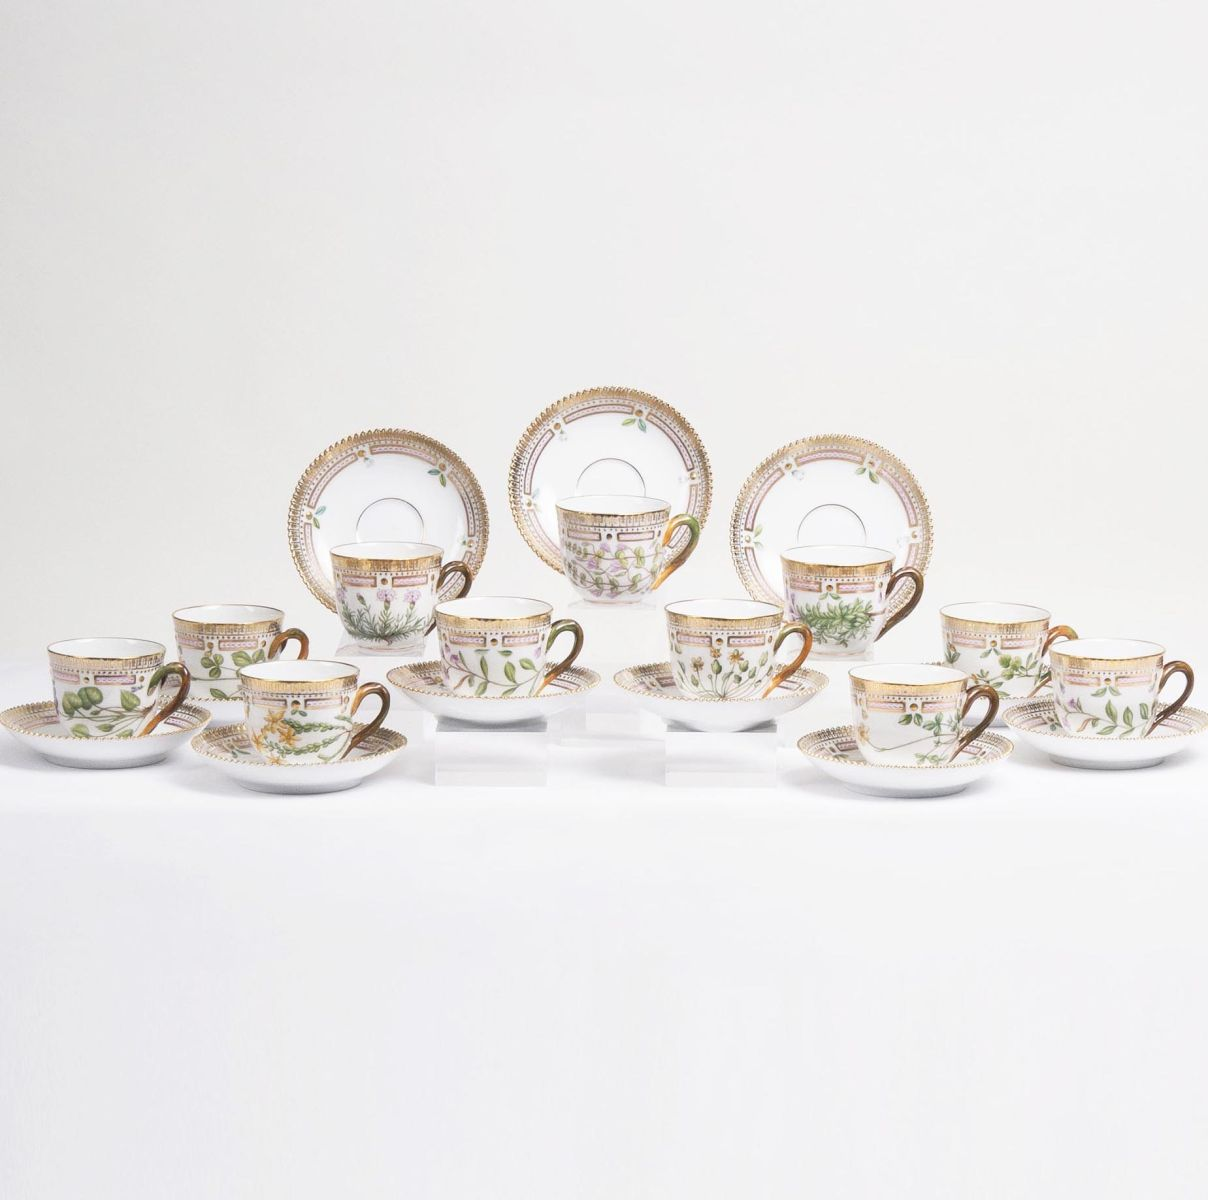 A Set of 11 Flora Danica Moccha Cups with 12 Saucers